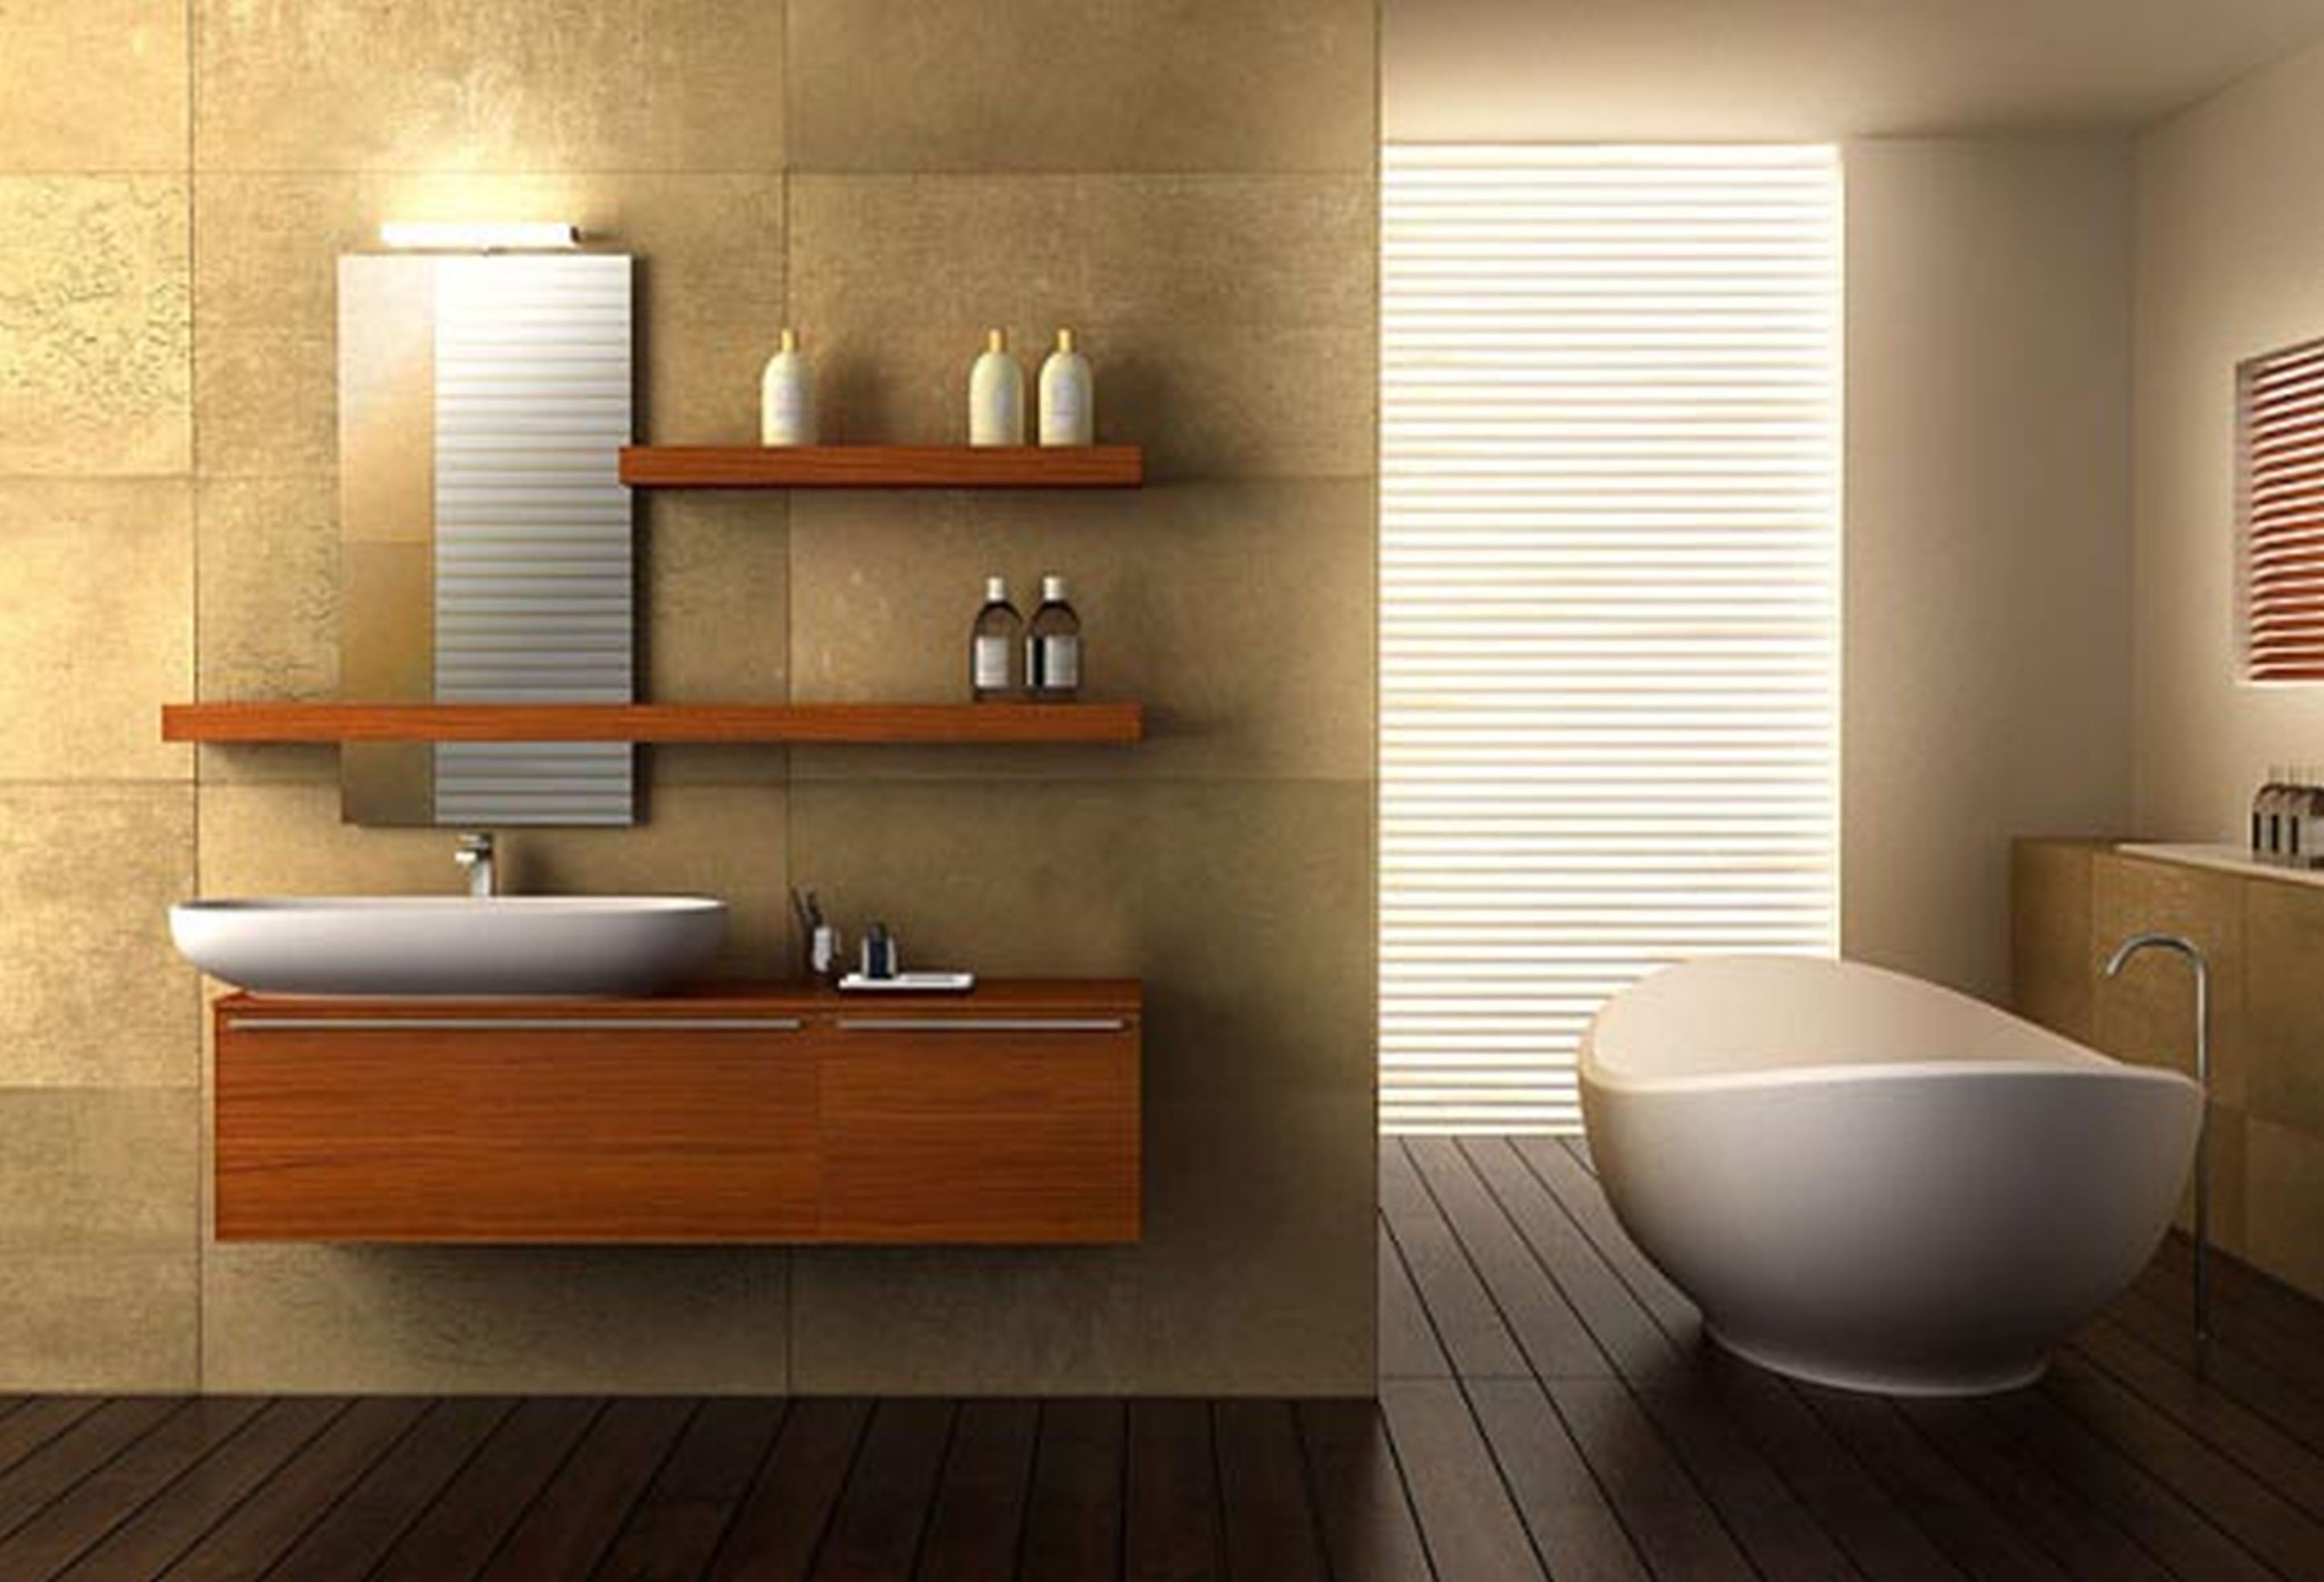 Great Disabled Bath Seats Uk Thin Finland Steam Baths Quincy Round Bathroom Water Closet Design Kitchen And Bathroom Design Certificate Old Bathroom Vanity Plans Free OrangePremier Walk In Bath Reviews Home Design Bathroom Ideas Visi Build. 1000 Images About Bathroom ..